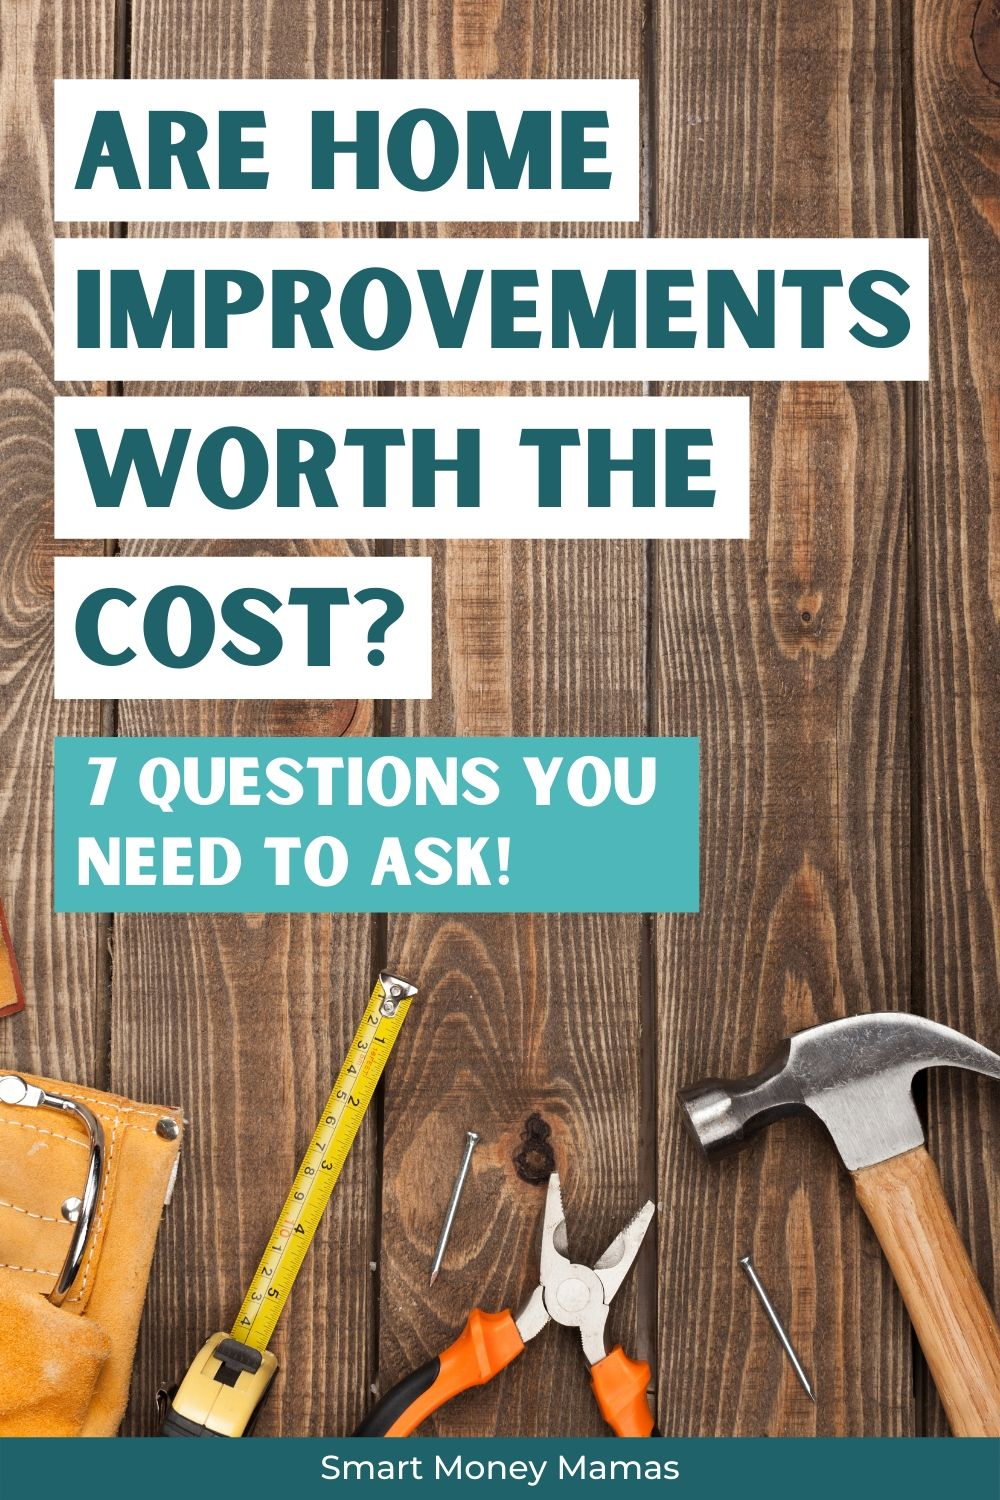 Are Home Improvements Worth the Cost? 7 Questions You Need to Ask